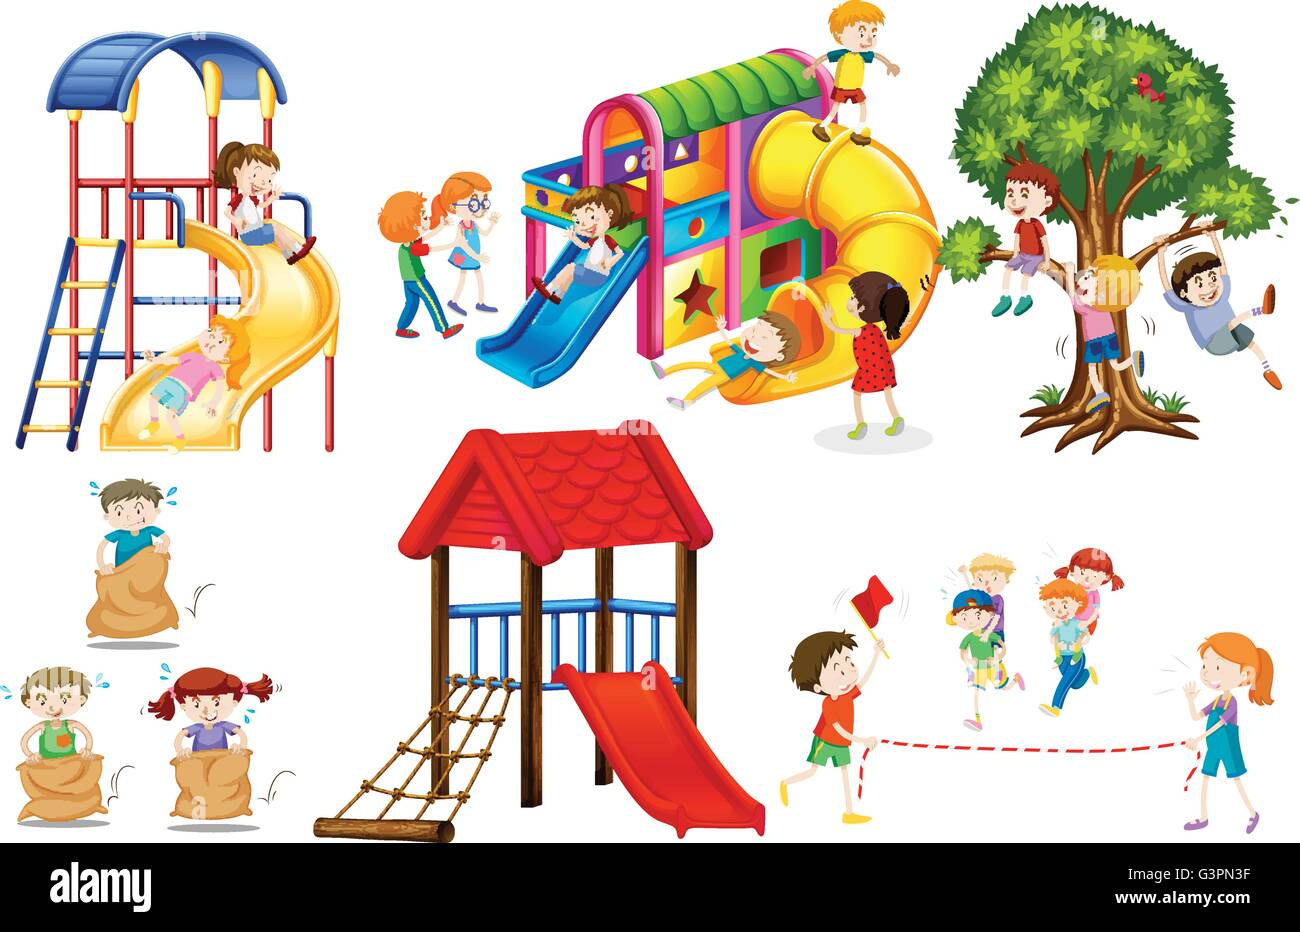 Kids playing games and playing slides illustration - Stock Vector